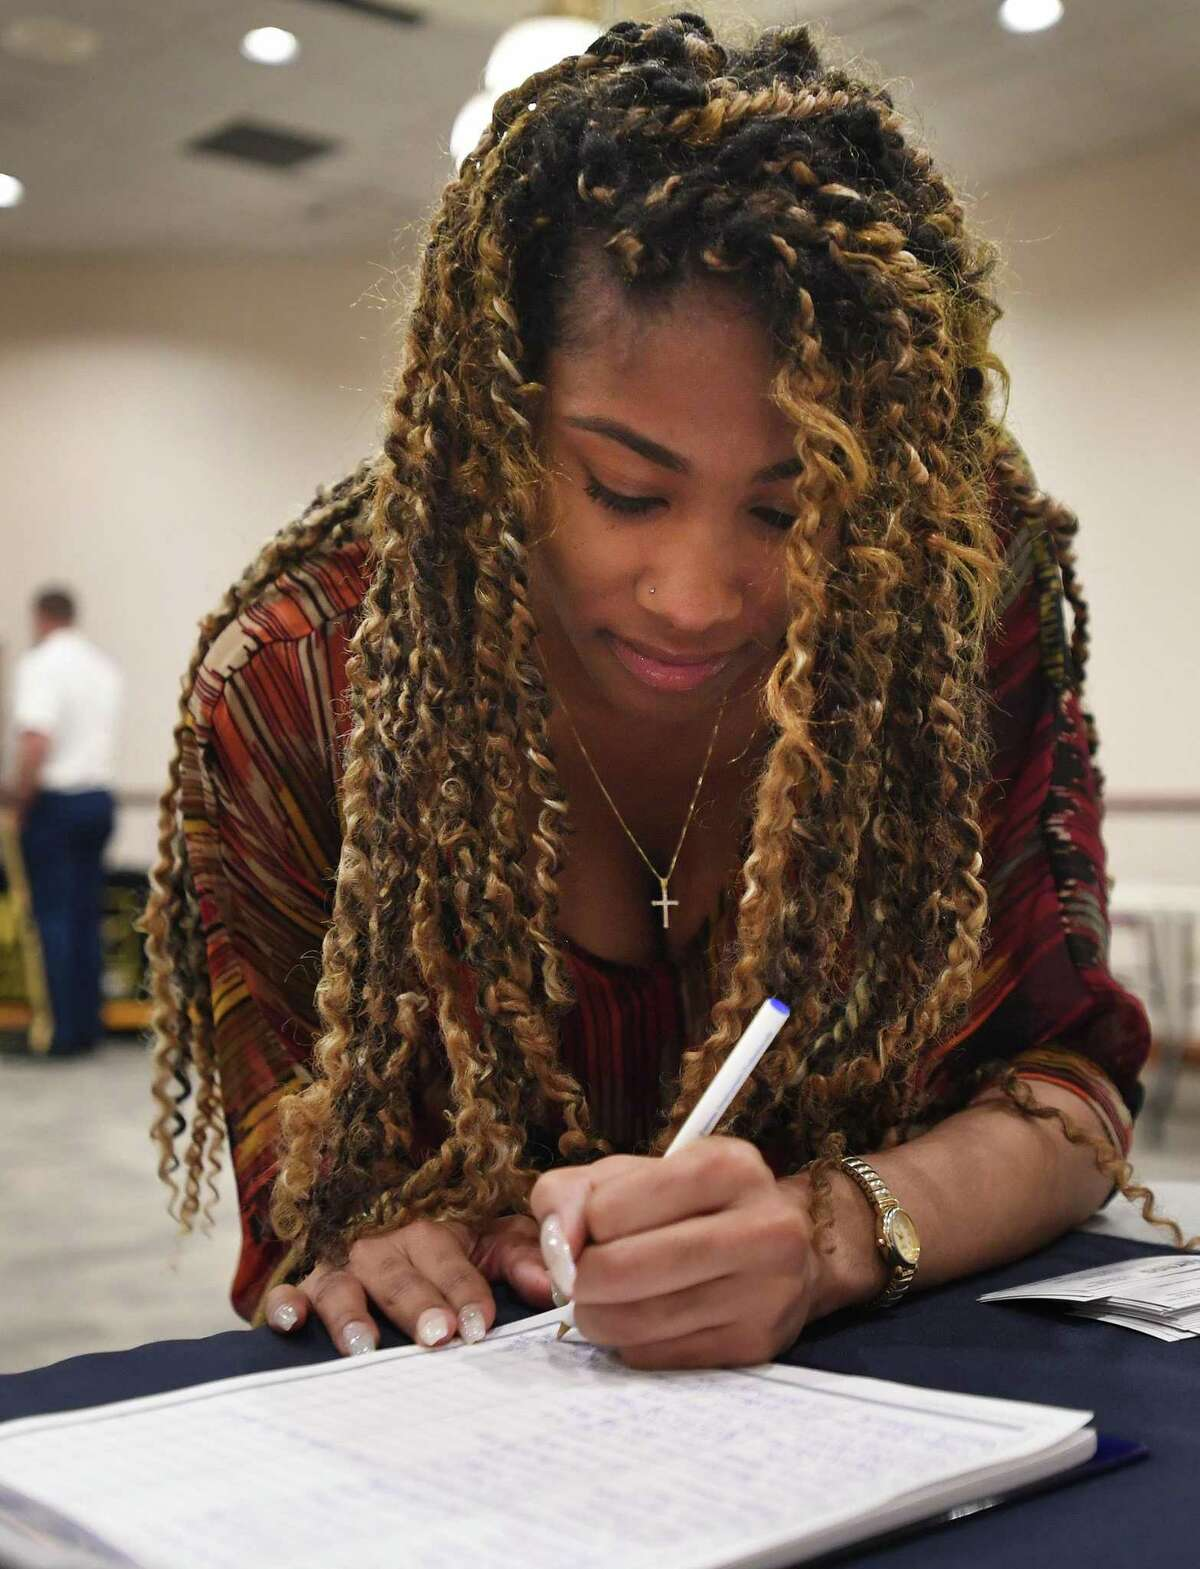 Viviana Johnson, of Bridgeport, applies for jobs at a job fair for youth ages 16 to 21 at the Margaret Morton Government Center in Bridgeport, Conn. on Wednesday, June 26, 2019. Connecticut has gained 13,300 jobs in the past year, including 4,000 in February 2020.